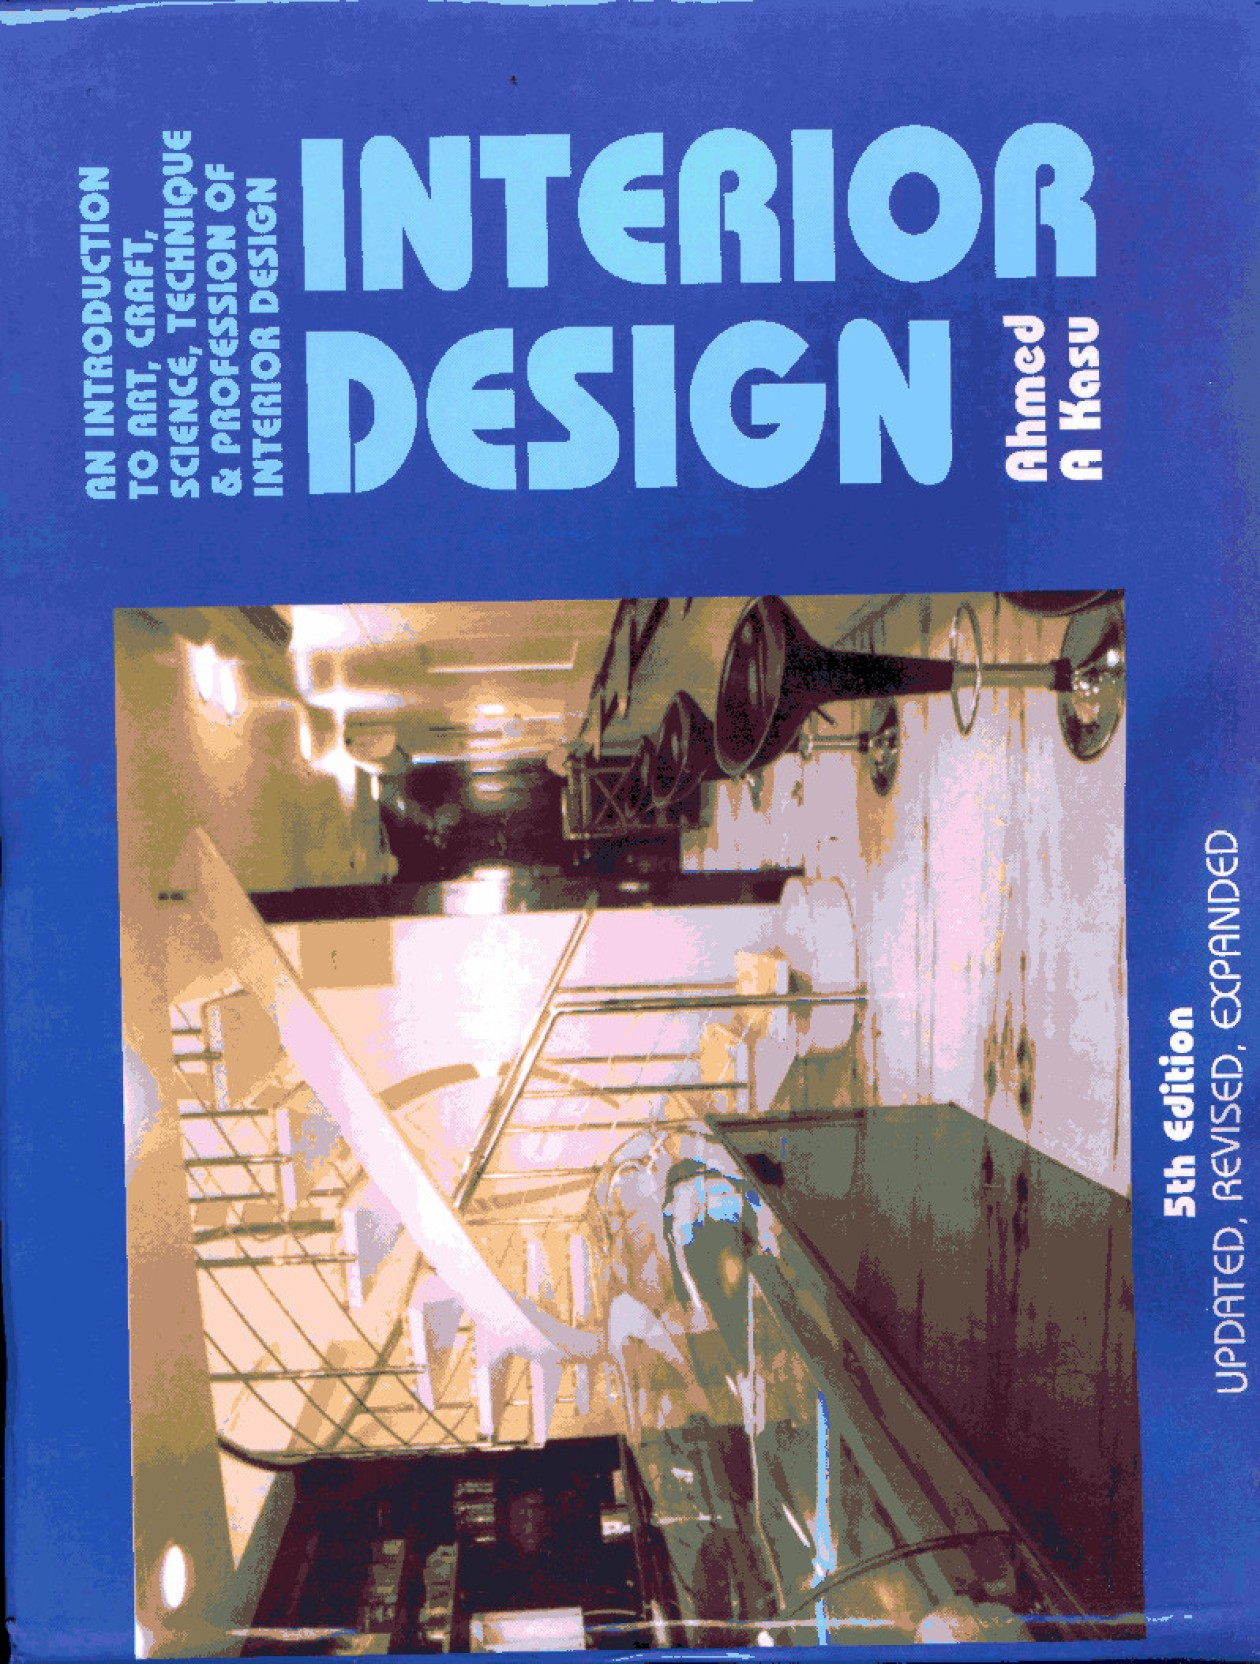 Interior Design An Introduction To Art Craft Science Techniques And Profession Of Interior